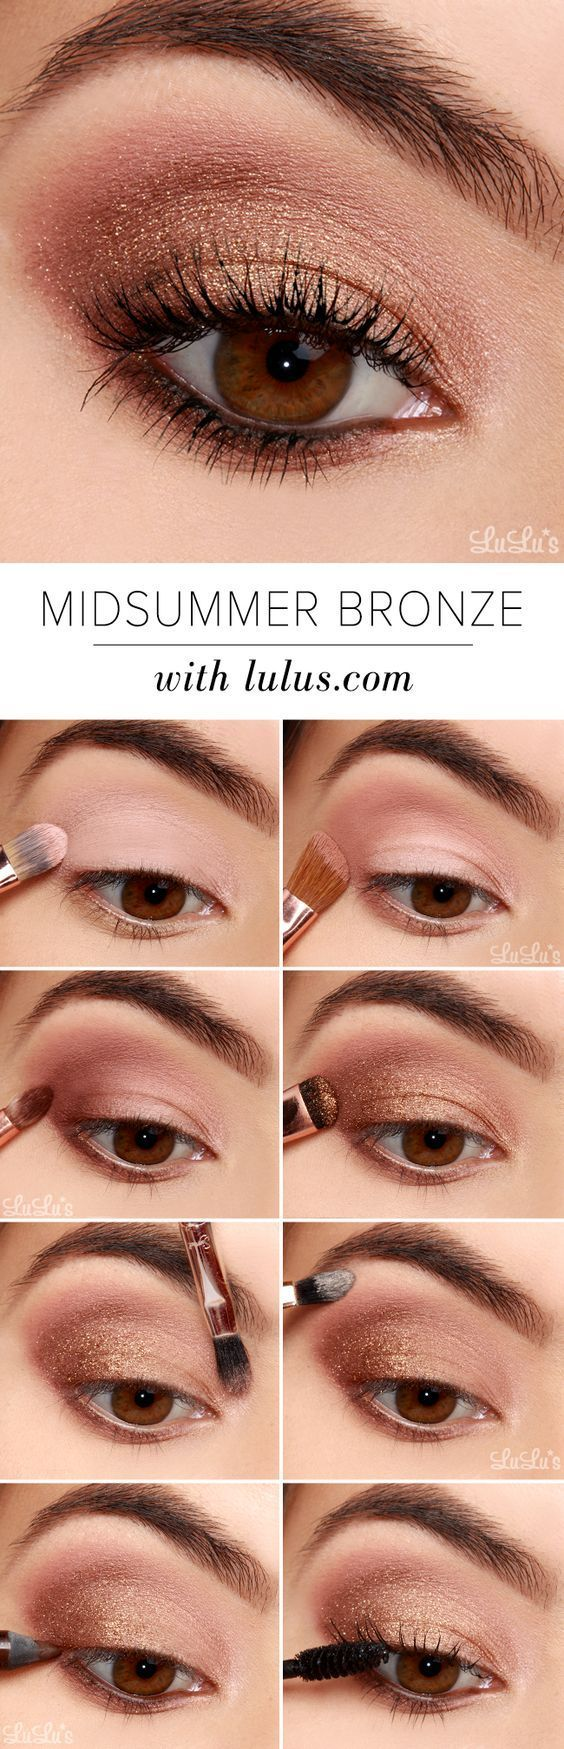 Photo of Lulus How-To: Midsummer Bronze Eyeshadow Tutorial – Lulus.com Fashion Blog